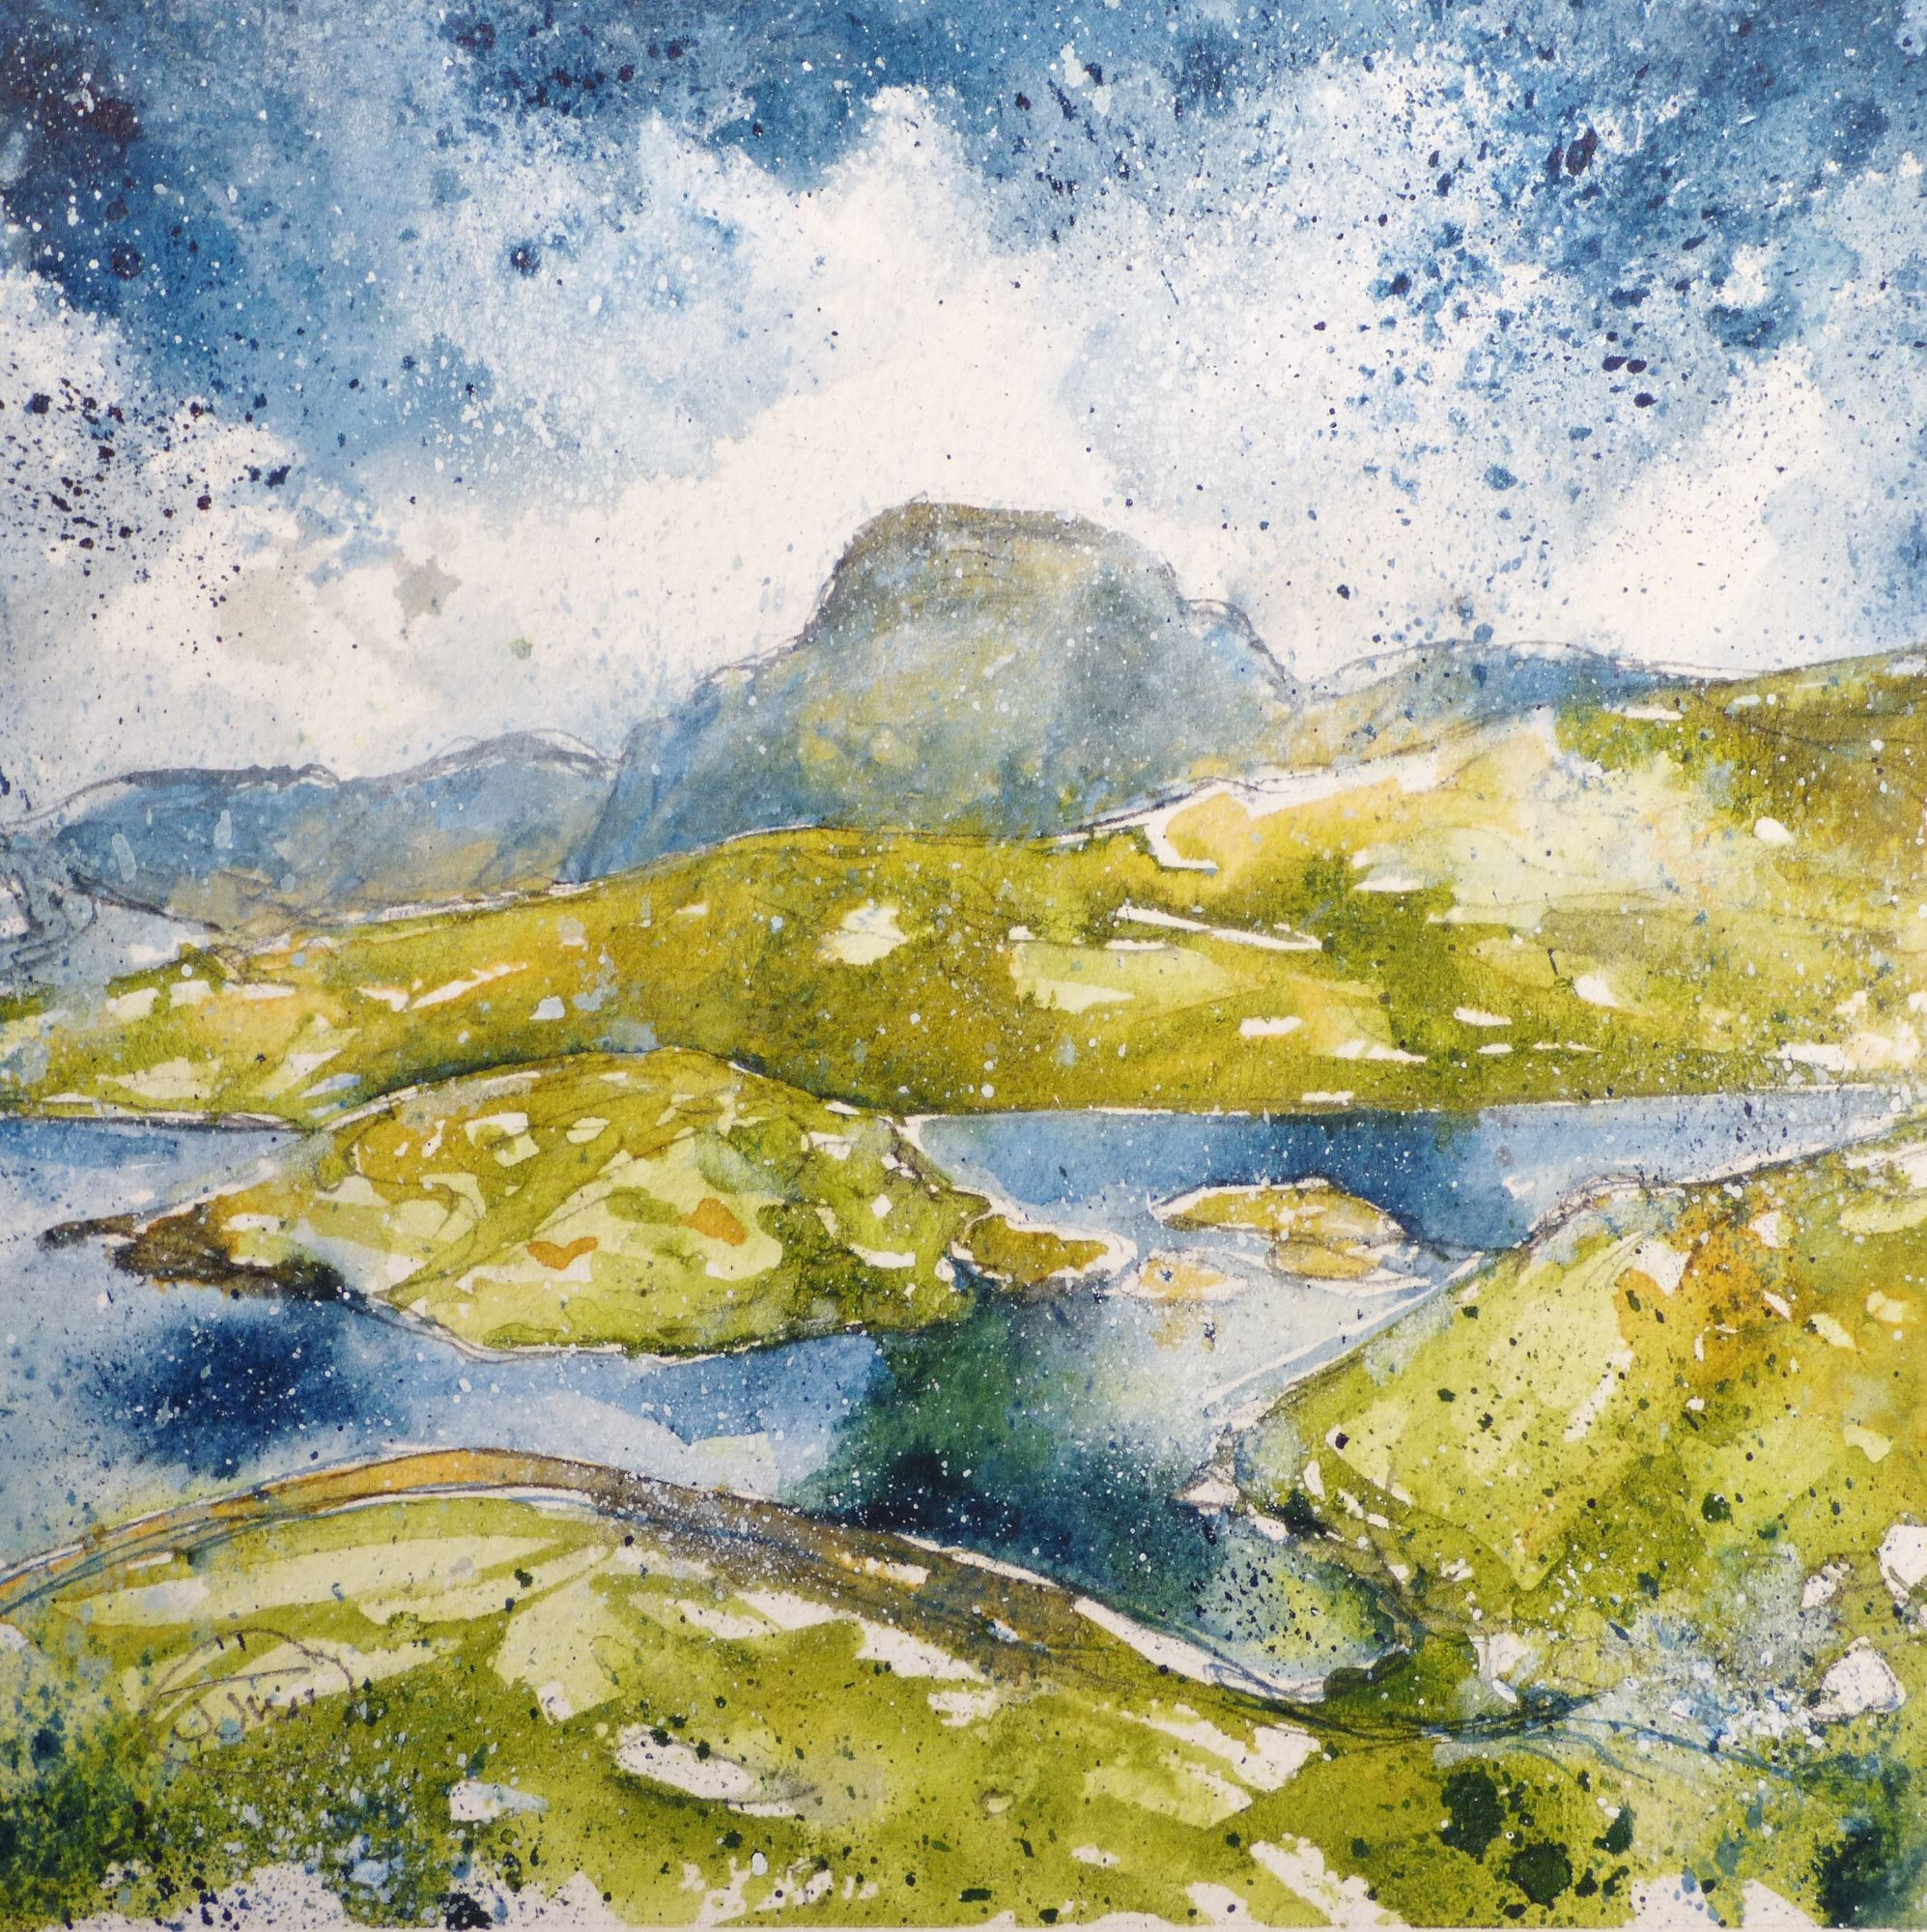 Sprinkling Tarn and Great Gable £140